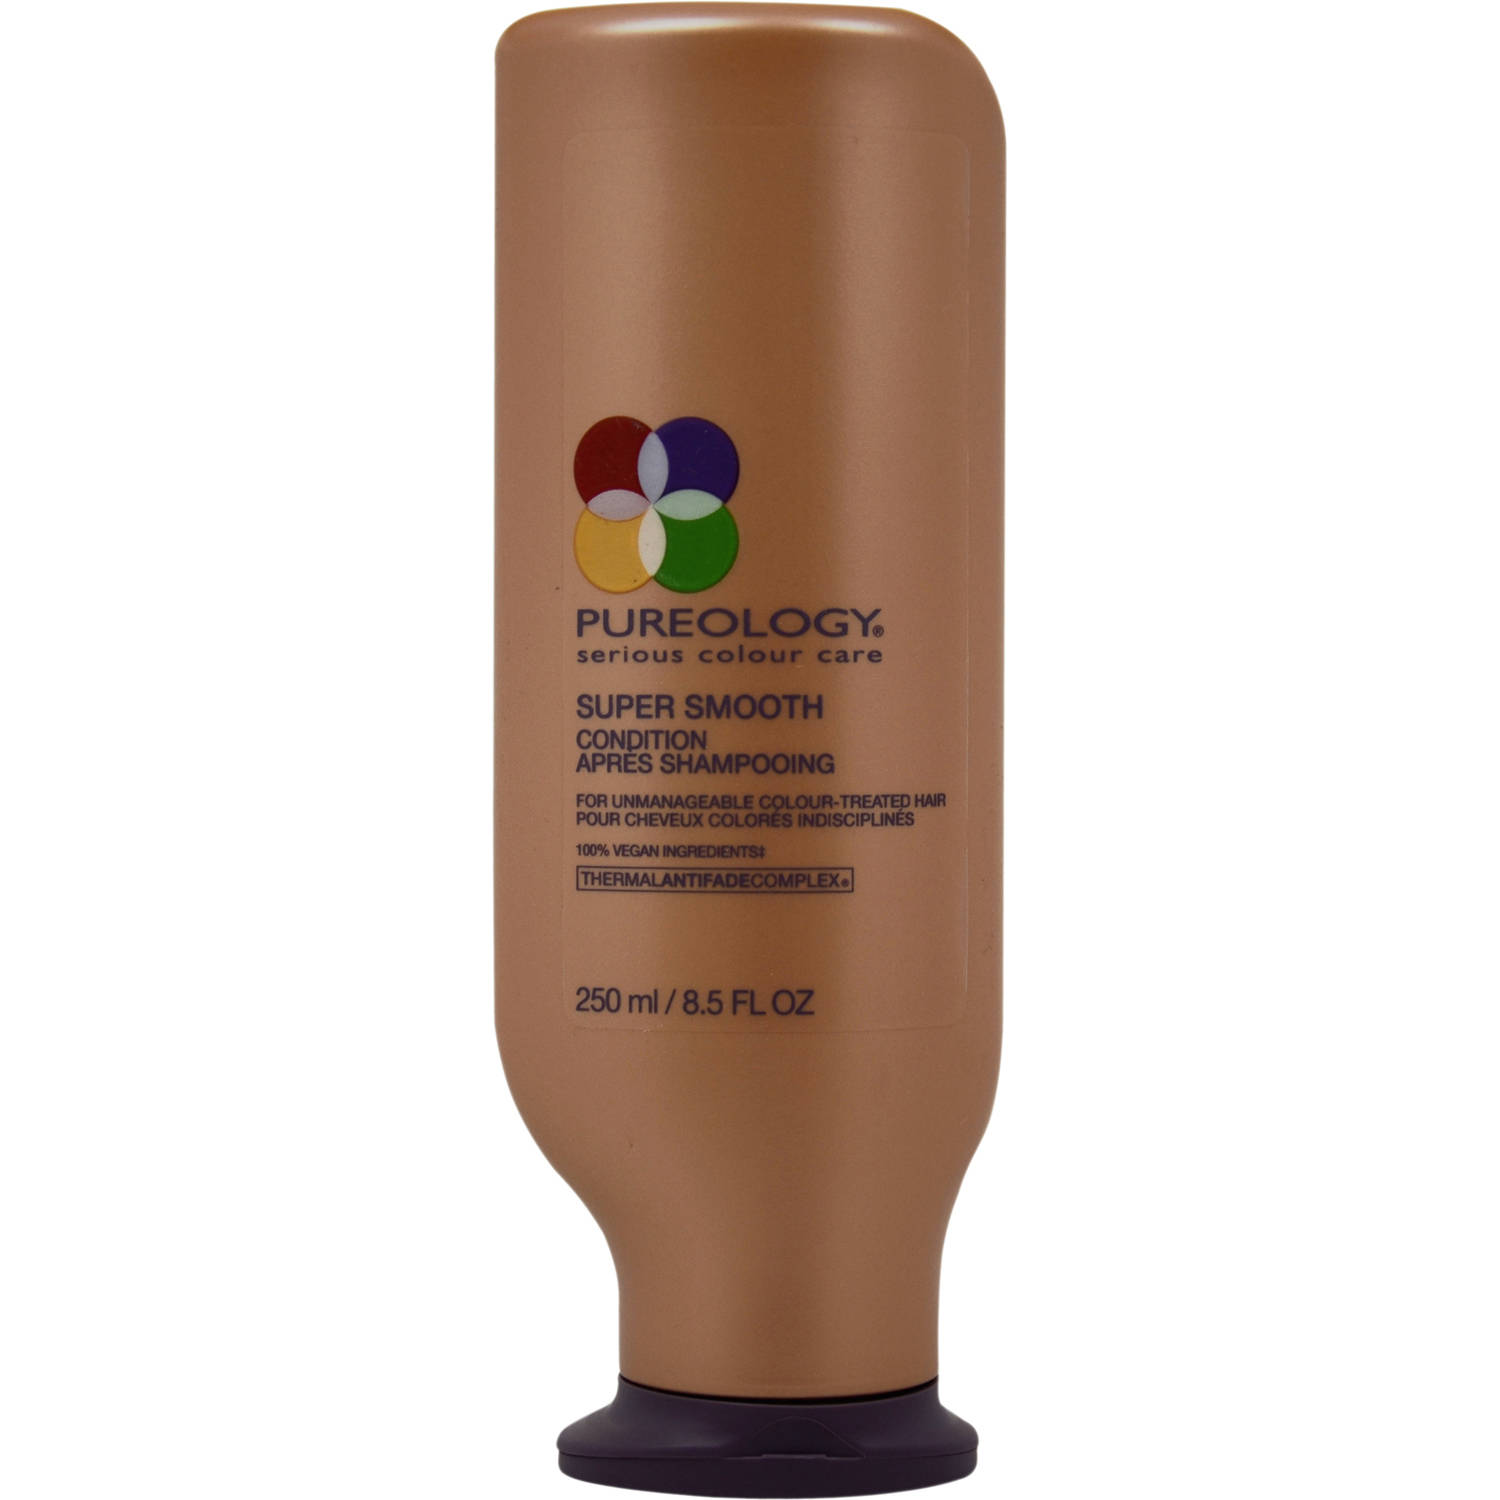 Pureology Super Smooth Conditioner, 8.5 fl oz